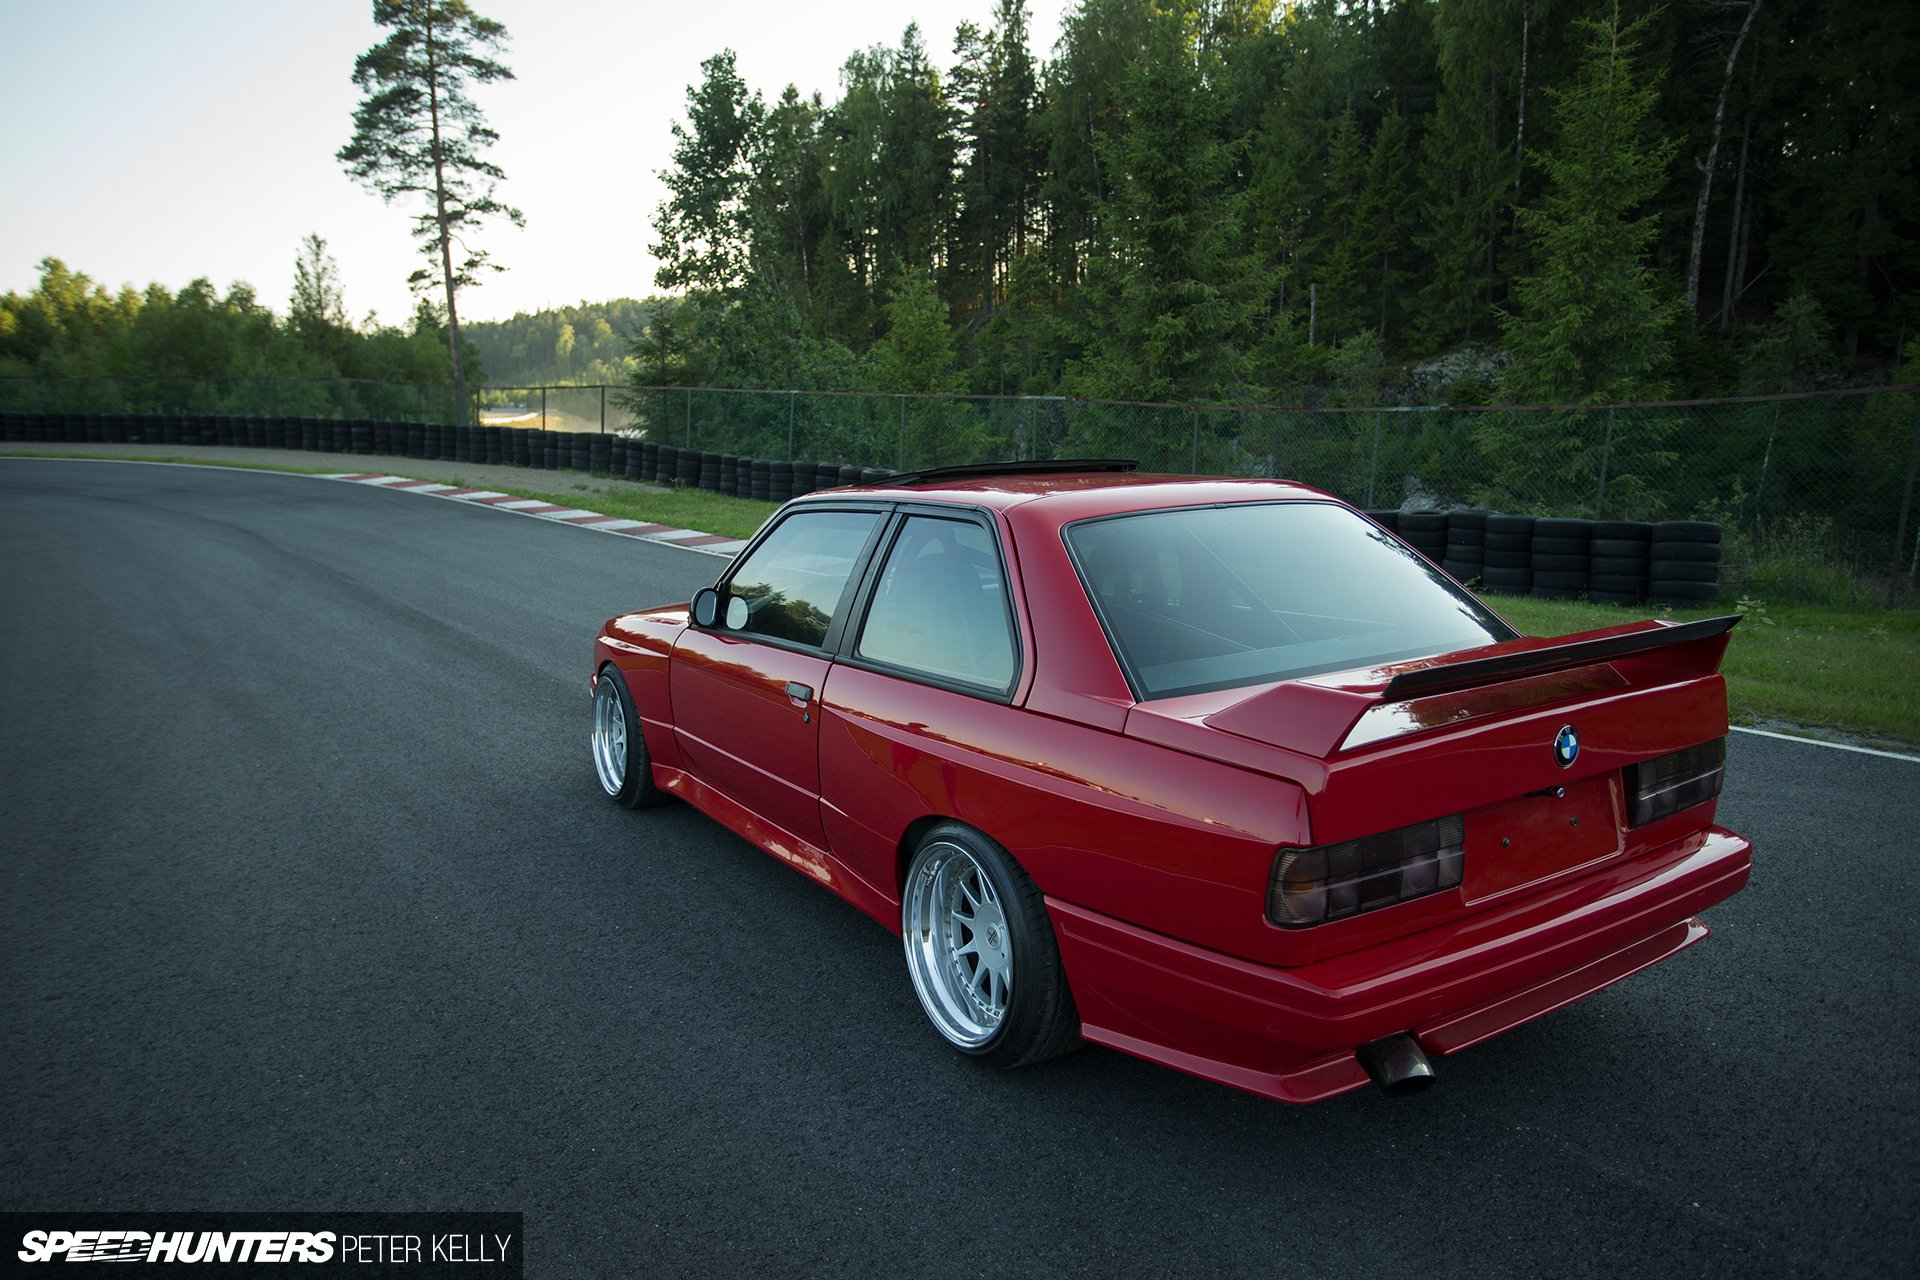 bmw m 3 e30 tuning turbo wallpaper 1920x1280 531520 wallpaperup. Black Bedroom Furniture Sets. Home Design Ideas